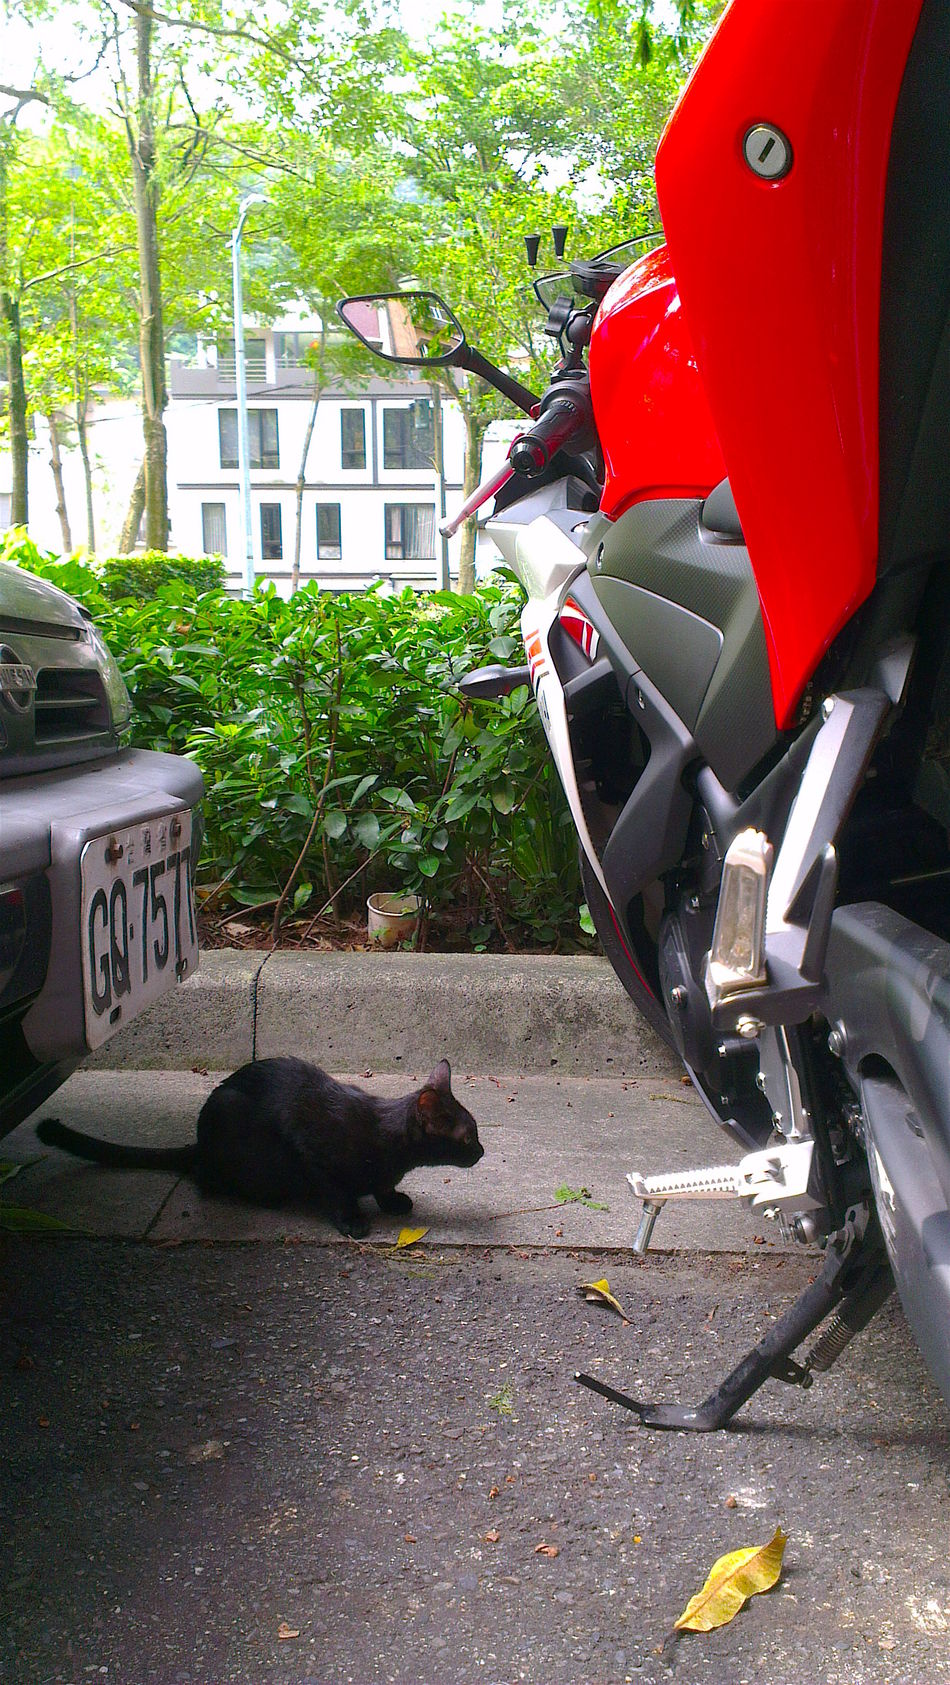 Alertness Black Cat Motorcycles Red Small Cat Sneak Watching The Street Photographer - 2016 EyeEm Awards